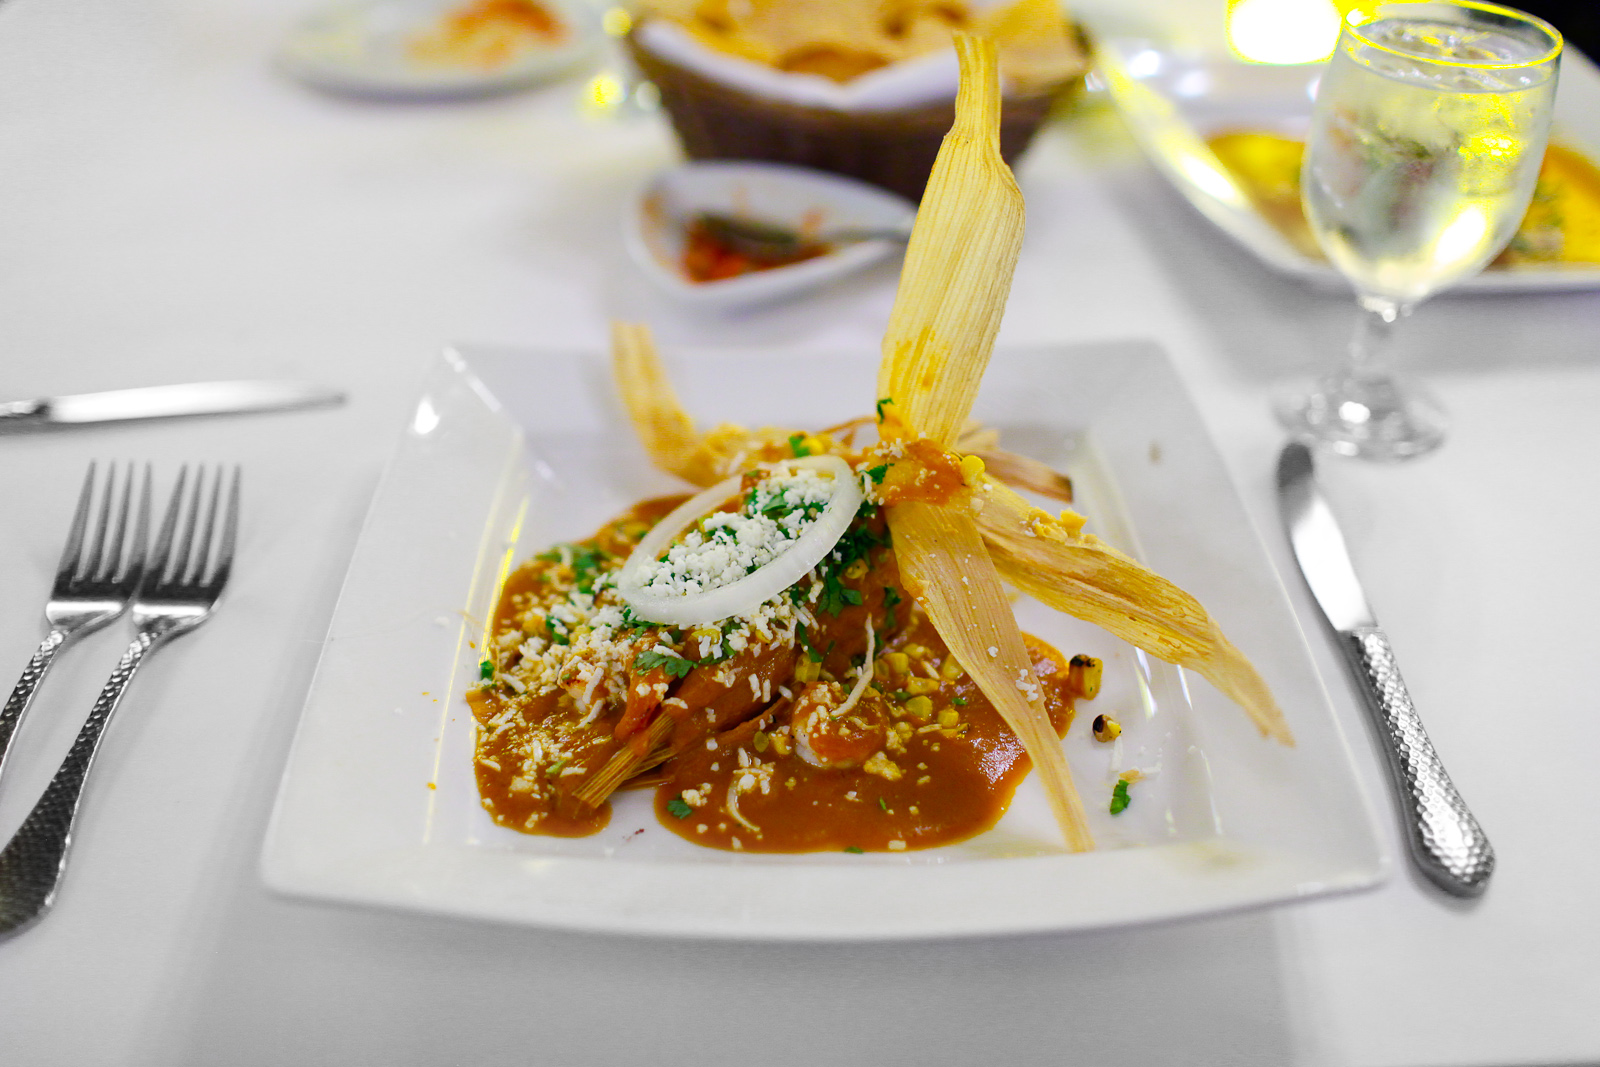 Tamal de elote - fresh corn tamal with seared shrimp, cooked in a chipotle chile cream ($11)